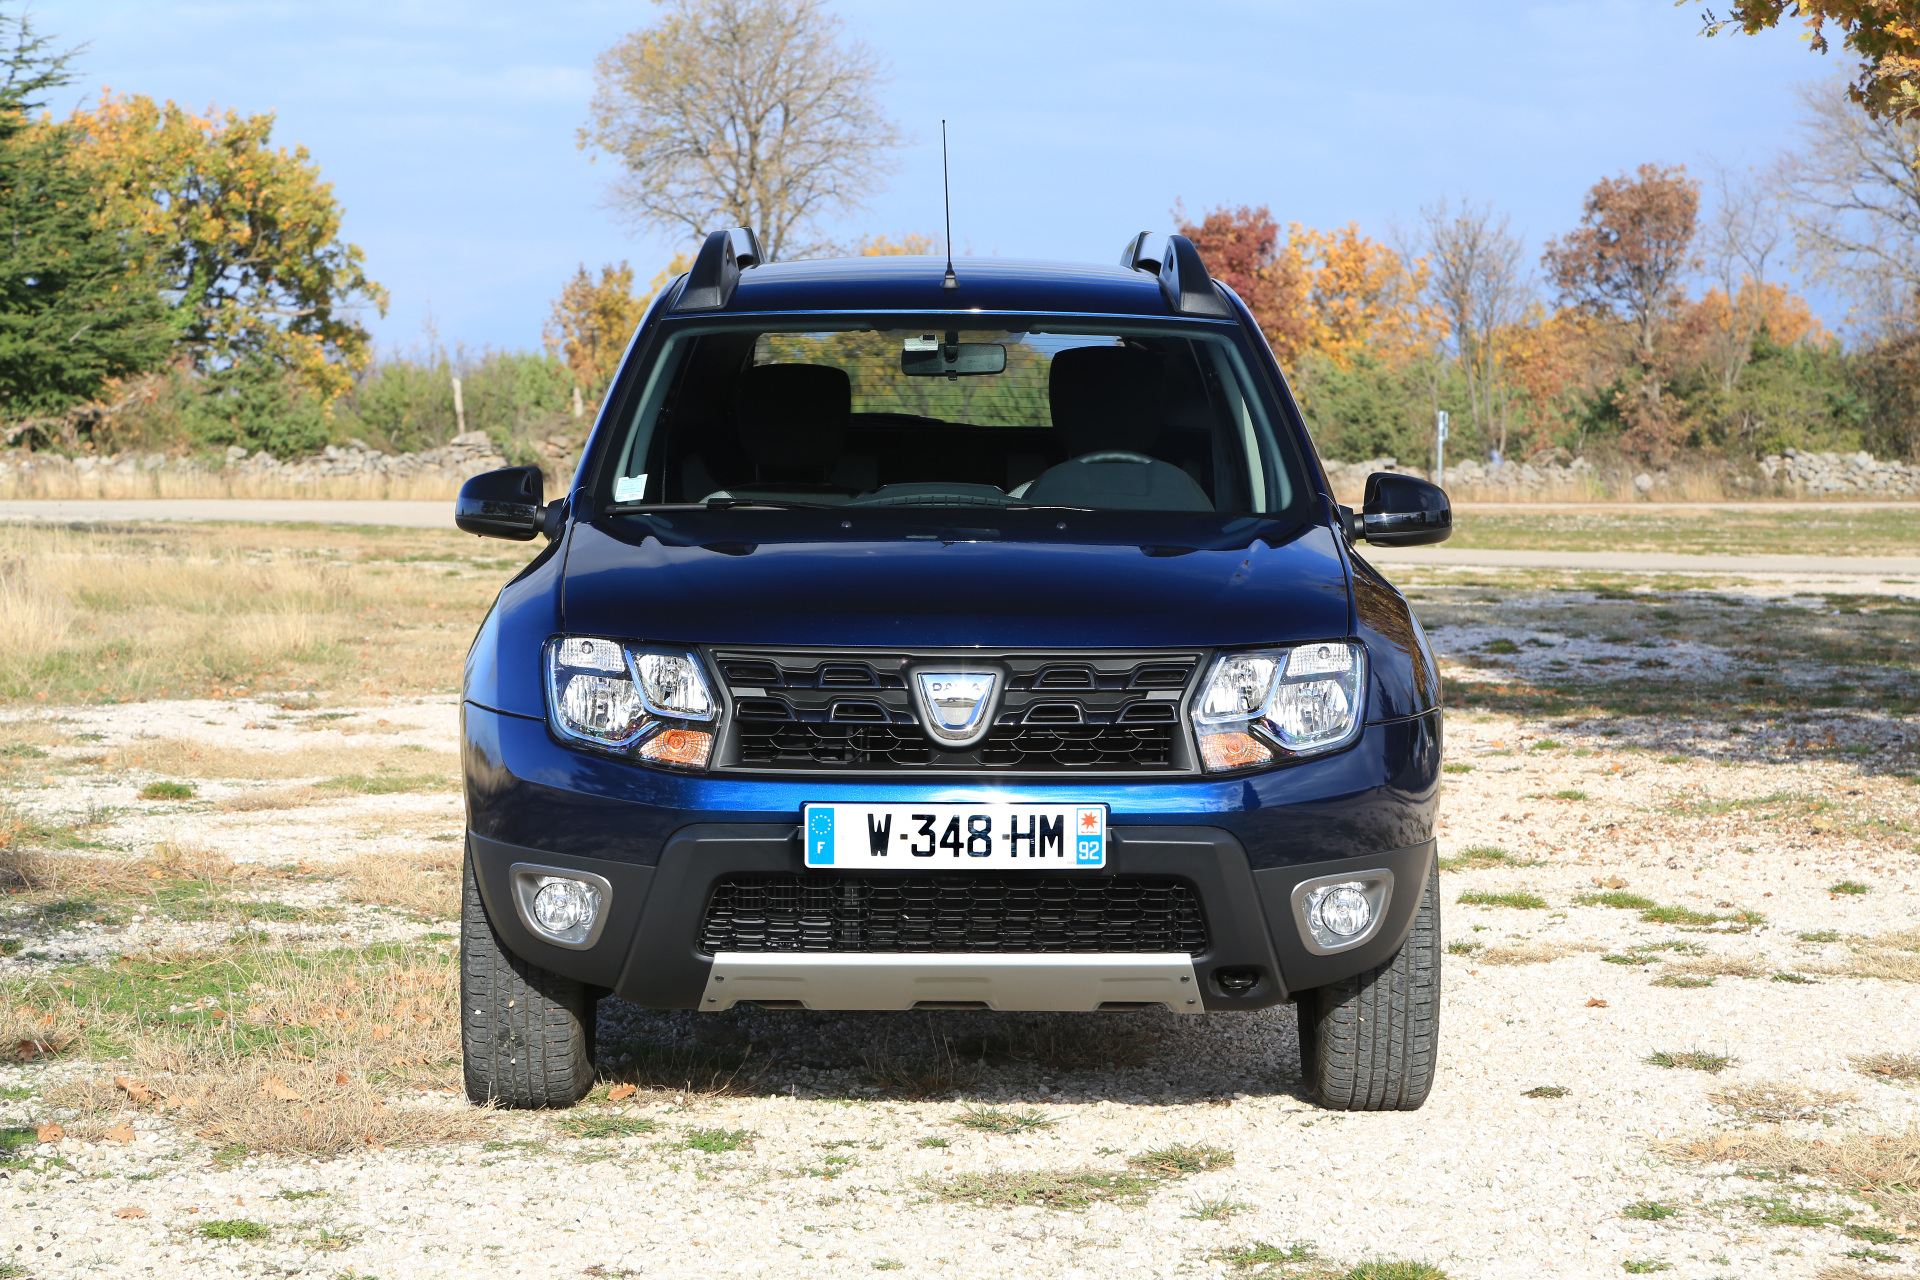 essai dacia duster dci 110 edc notre avis sur le duster automatique photo 25 l 39 argus. Black Bedroom Furniture Sets. Home Design Ideas